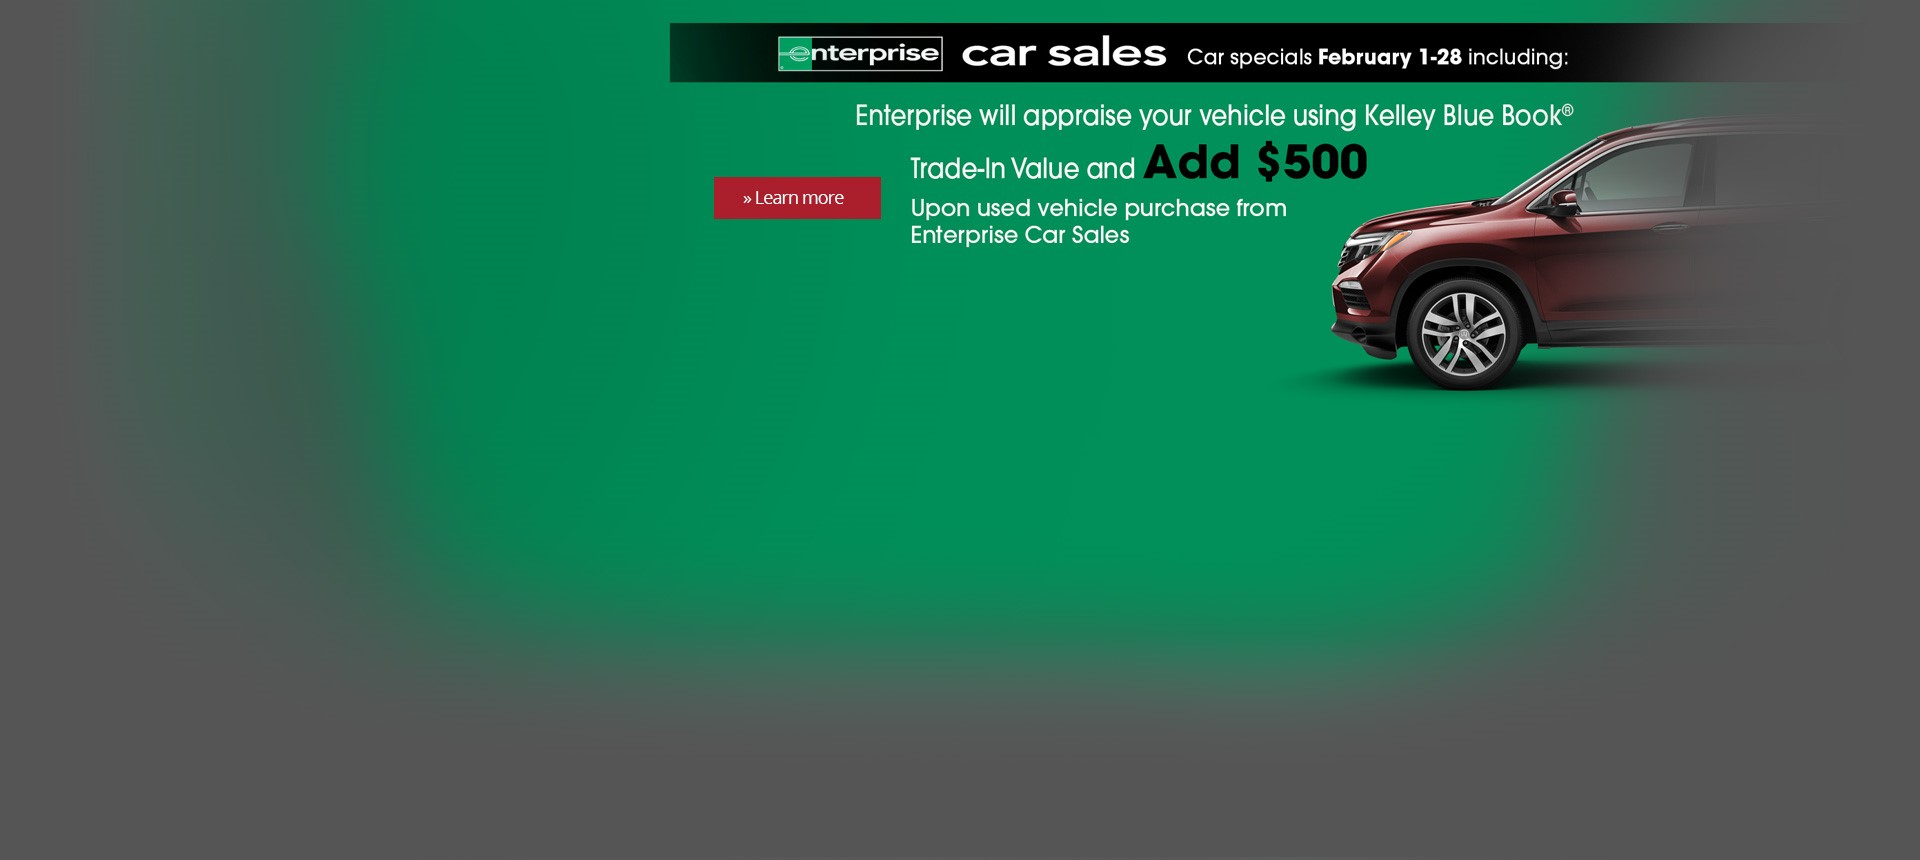 Enterprise Car Sales Feb. 2018 $500 Kelley Blue Book Offer on Enterprise Used Cars